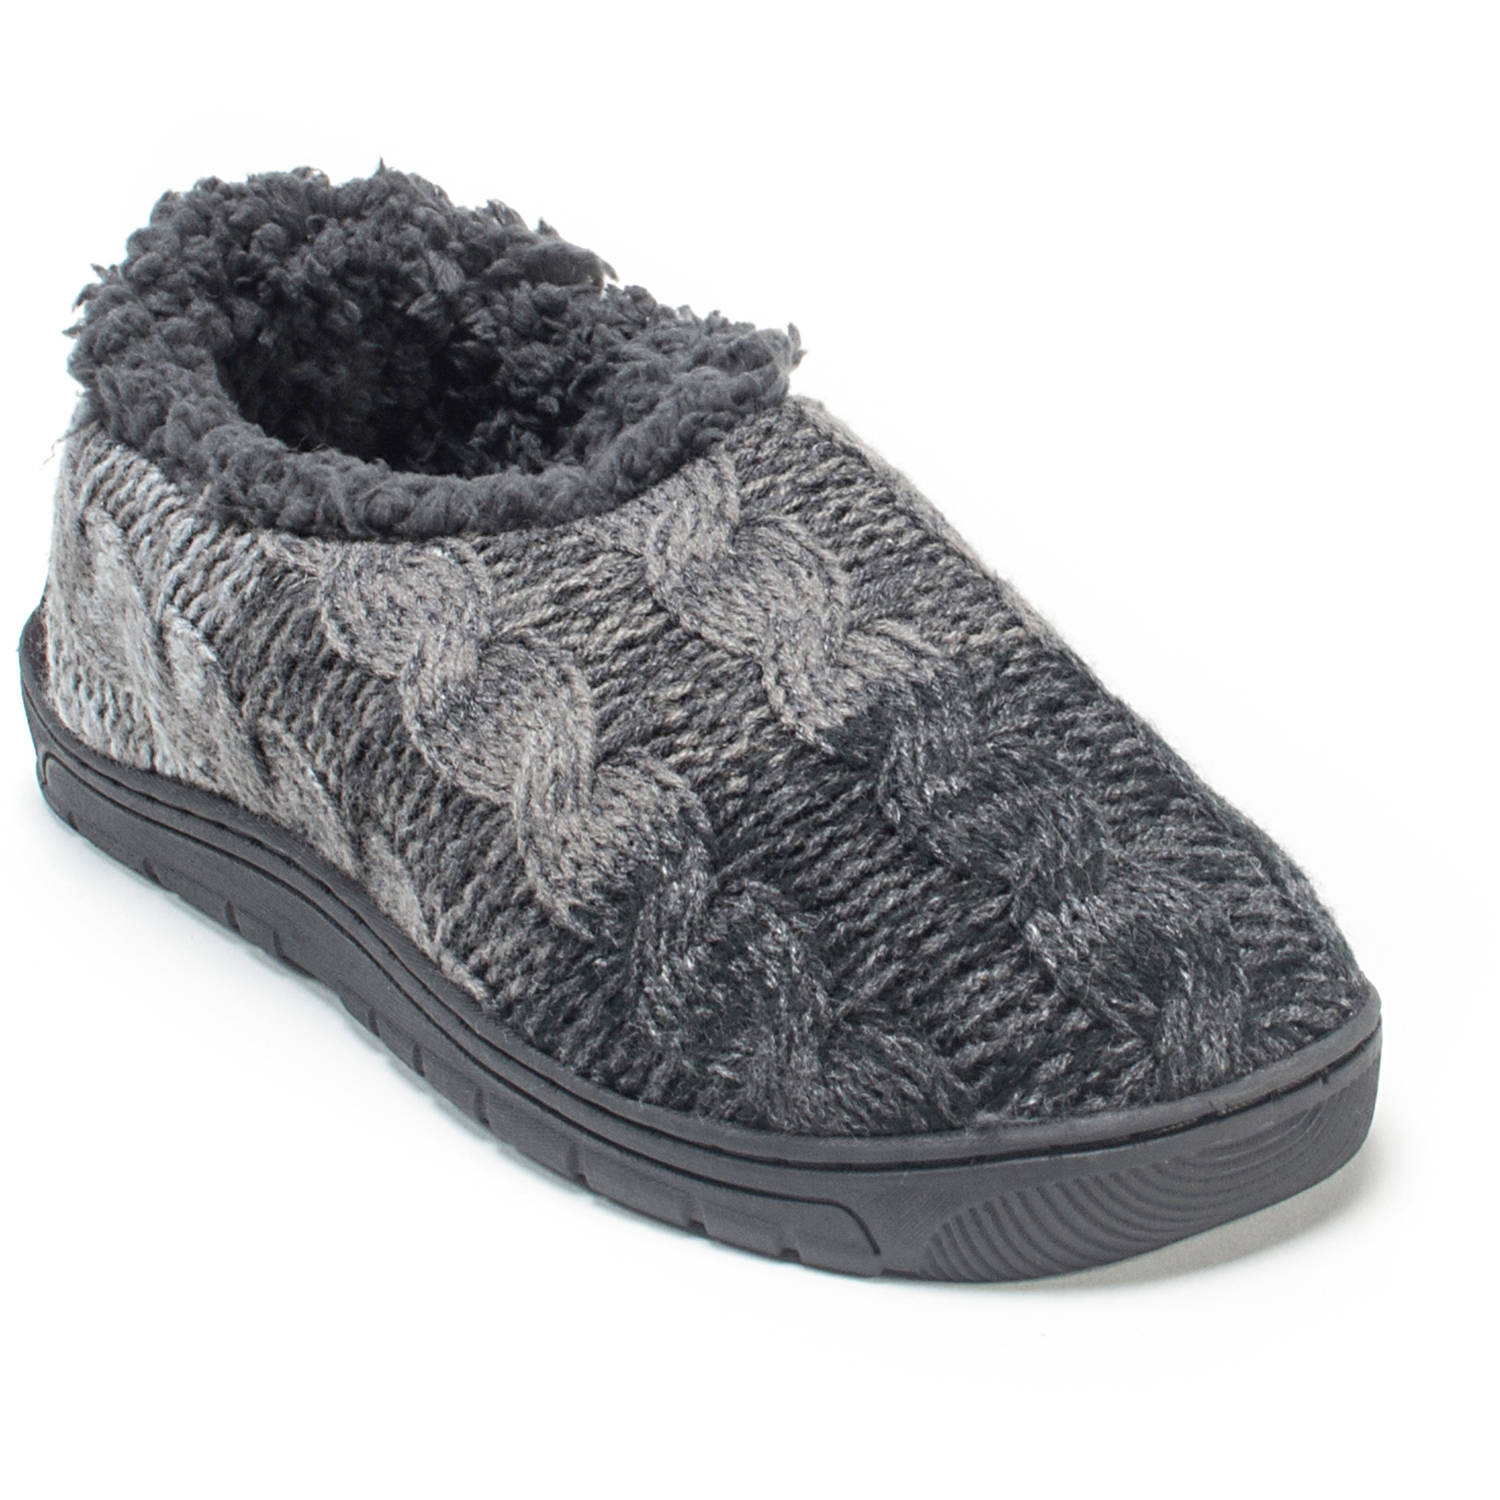 Muk Luks John Men's Clog Knit Sweater Slippers House Shoes